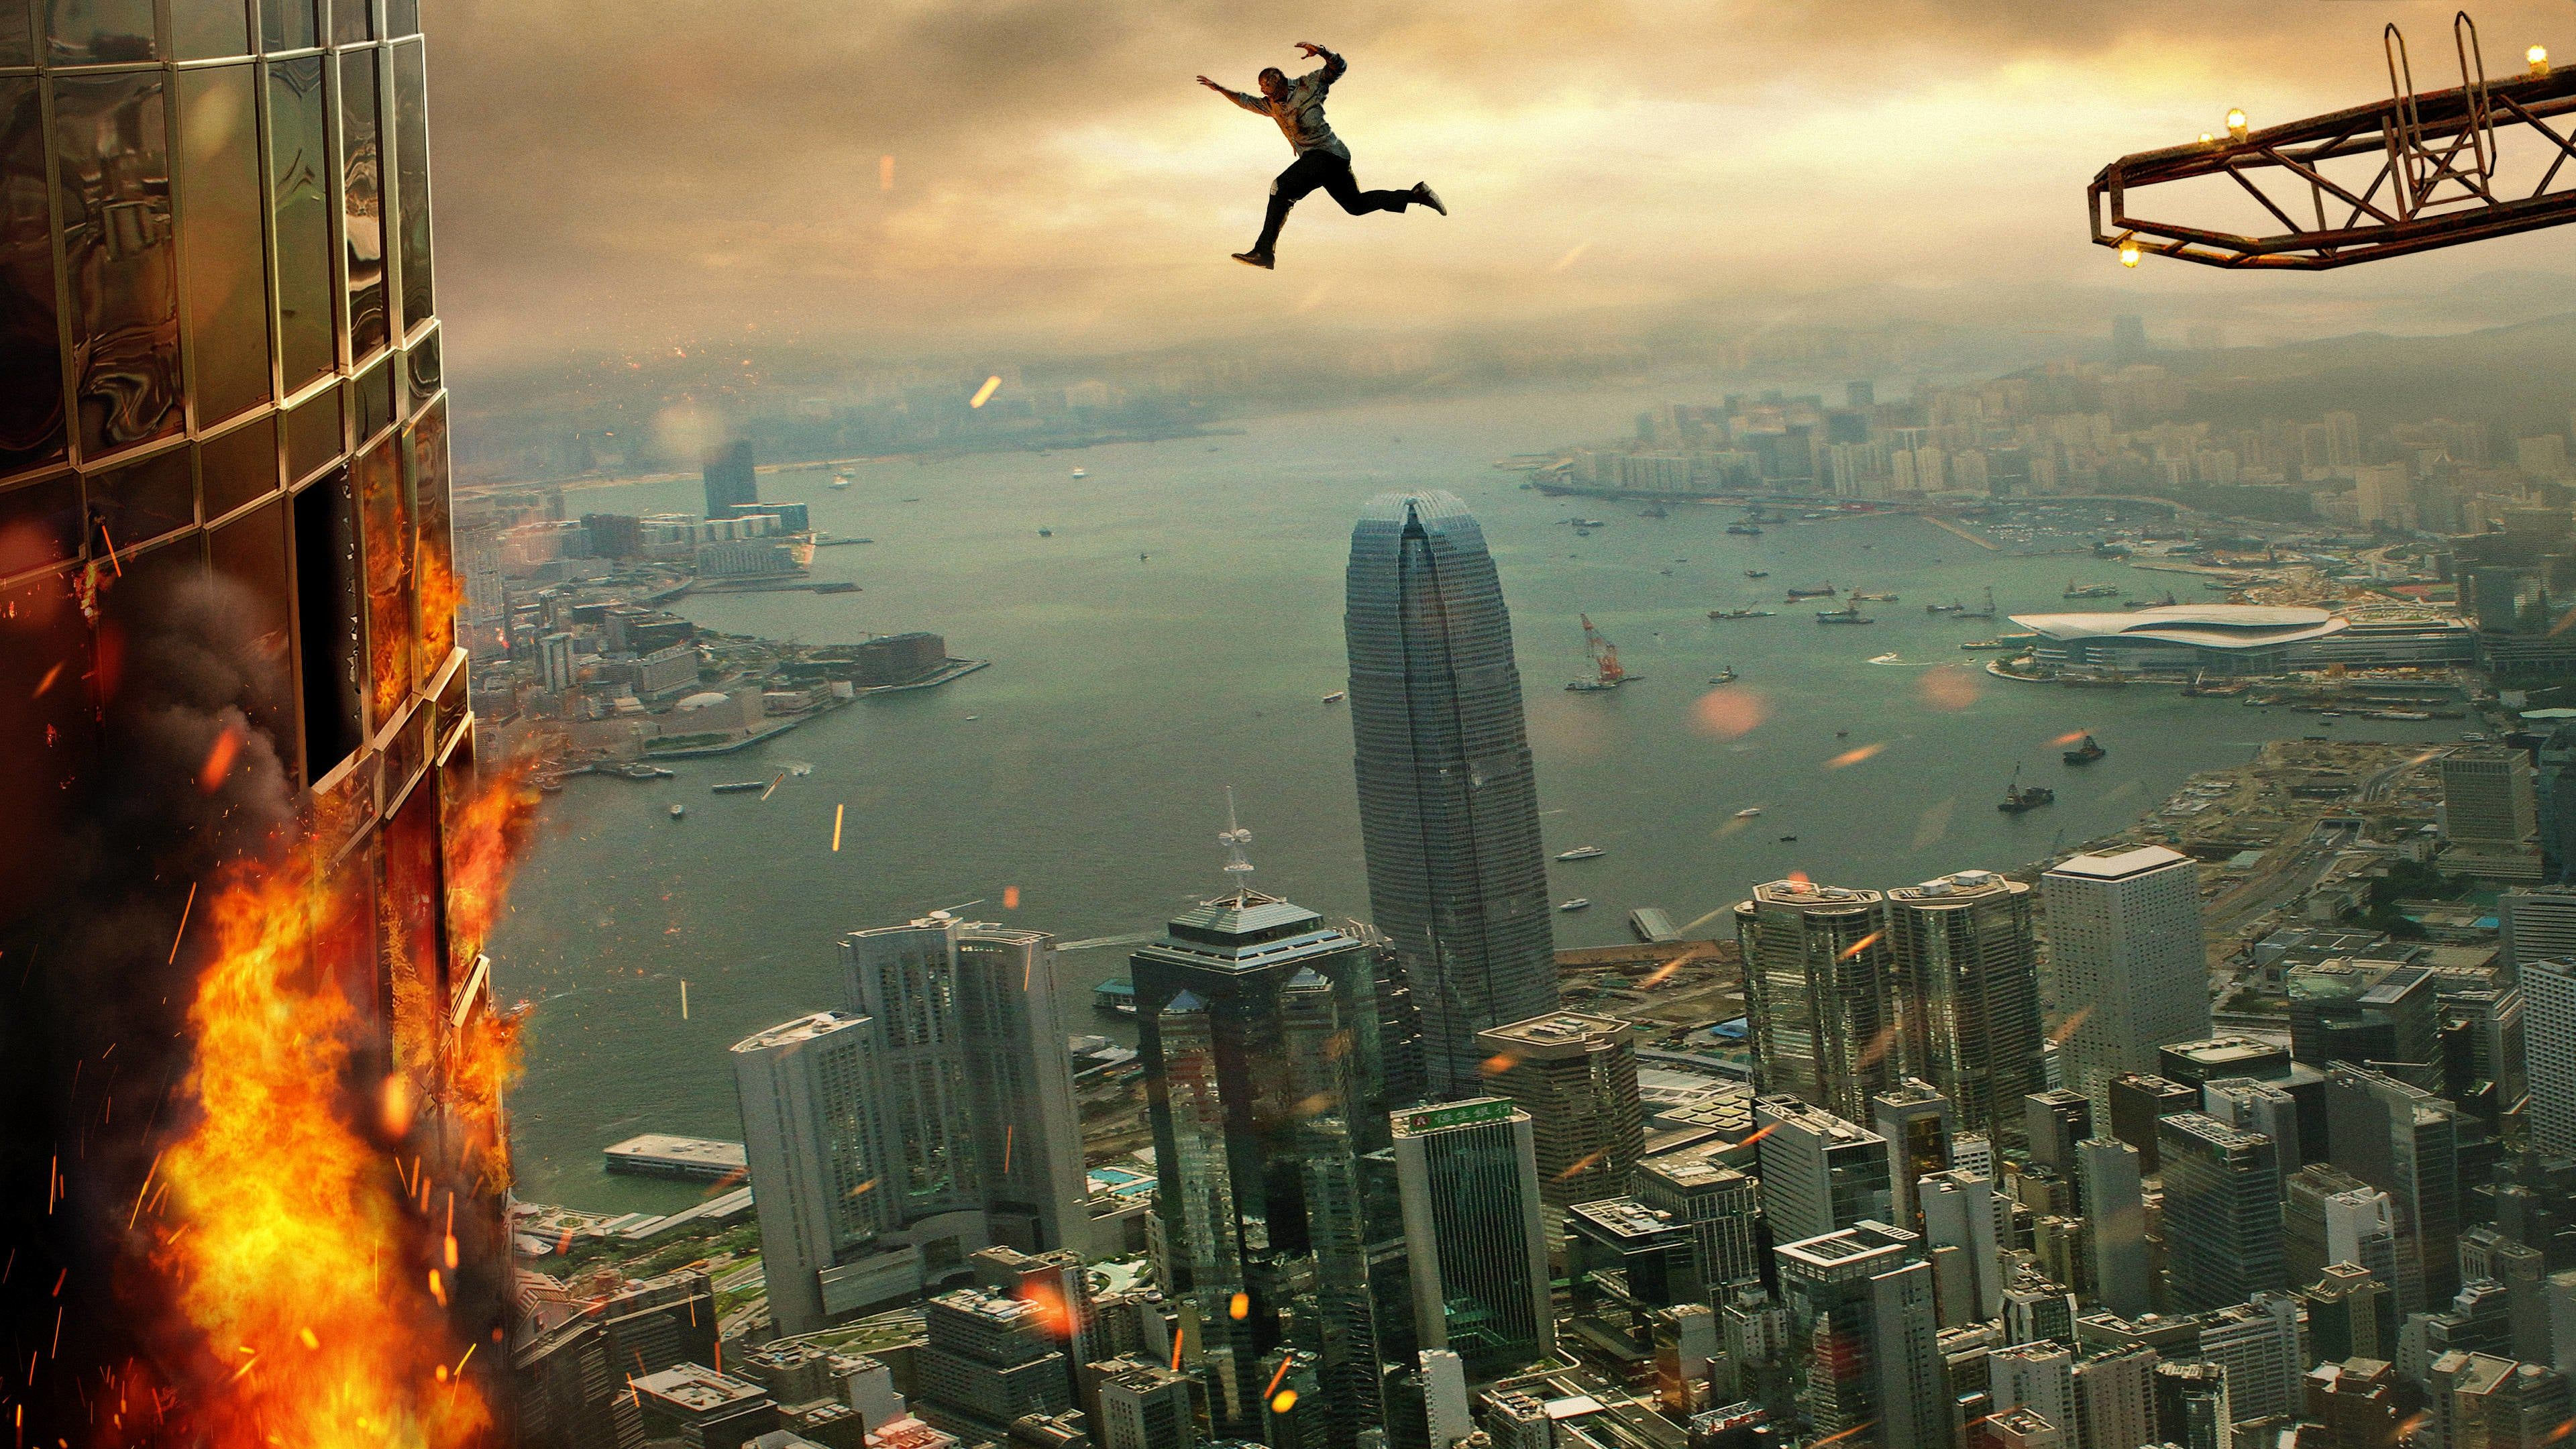 Skyscraper 2018 Film Norsk Undertekst Pa Nettet Movie123framed And On The Run A Former Fbi Agent Must Save His Family From A Blazing Fire In The Film Indonesia